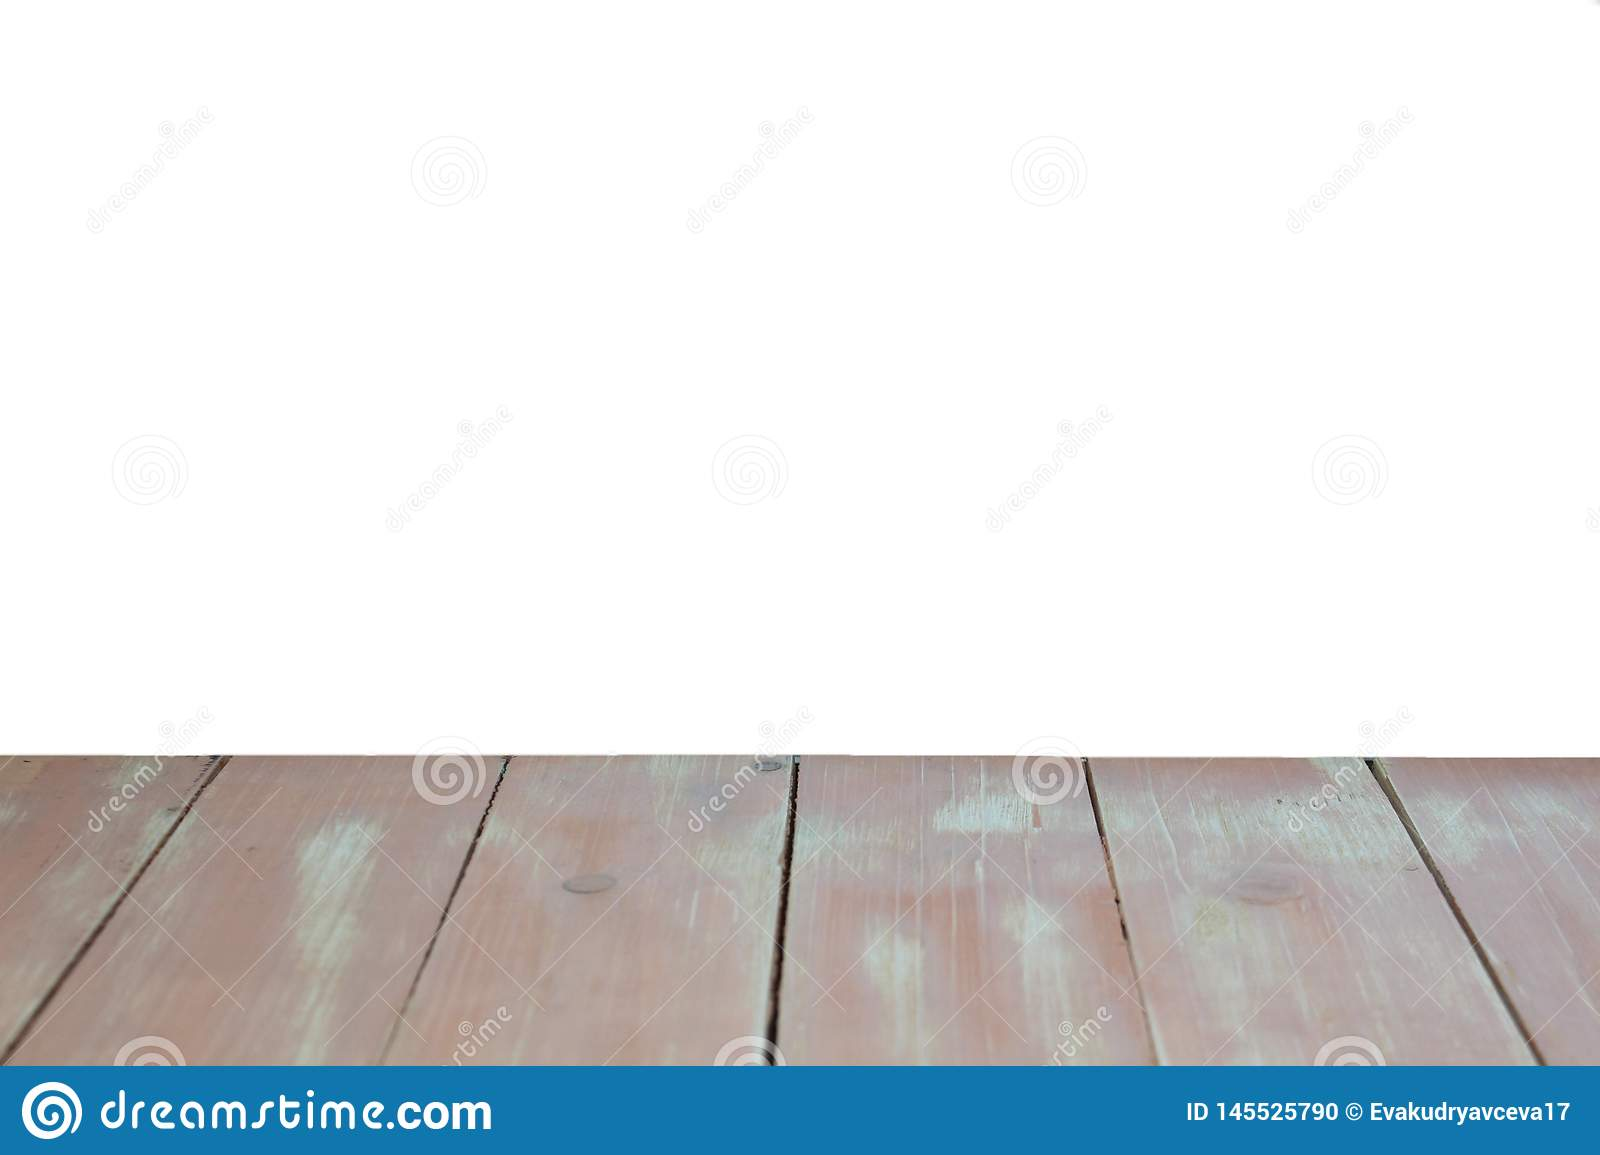 Texture wooden floor light brown color and isolated on half of the photo